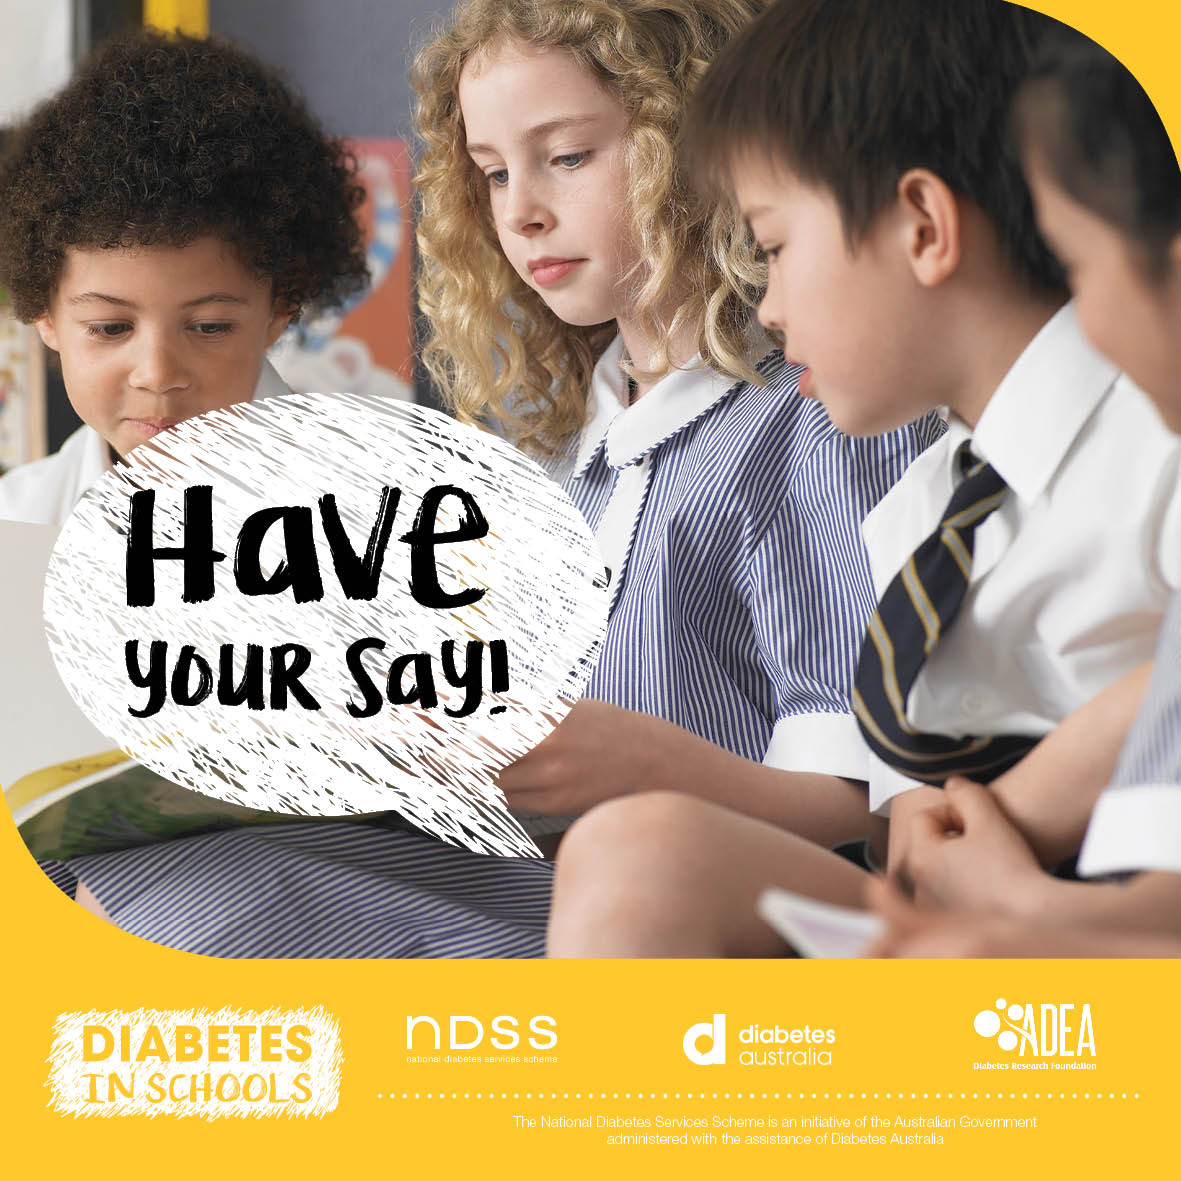 test Twitter Media - Live in #Victoria & want to have your say about #diabetesmanagement in schools? Next week we're running a series of workshops for parents & school staff. Register here: https://t.co/qGX7NAYGZ7 Can't make a workshop? Take a 15 min survey on same link above #Melbourne #type1 https://t.co/mKEQjsctLq